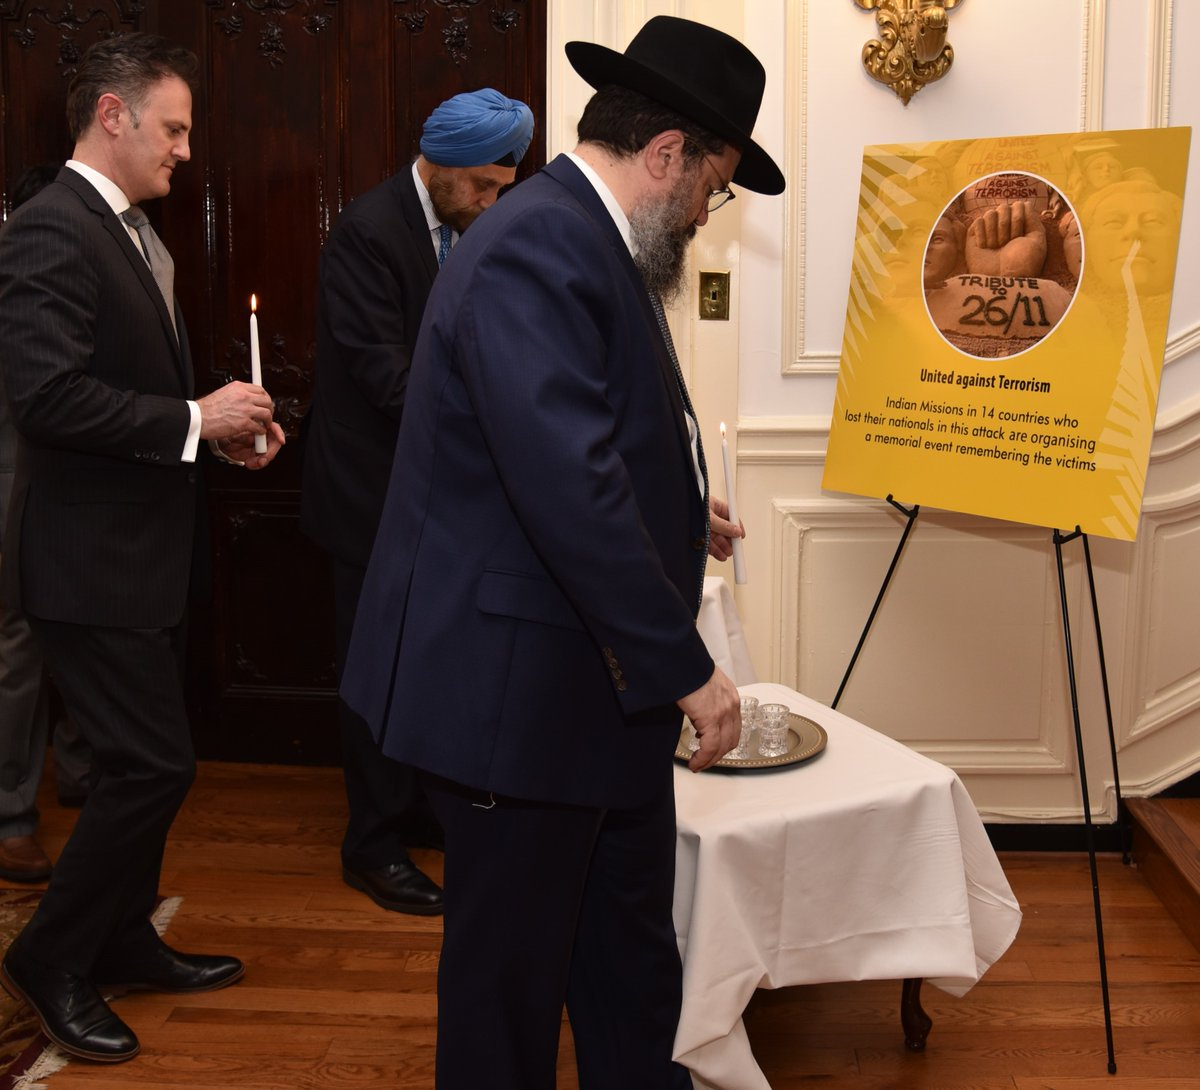 Lighting of candles by Ambassador Navtej Sarna, Ambassador-at-Large and Coordinator for Counter terrorism Nathan A. Sales, Rabbi Levi Shemstov, Executive Vice President, American Friends of Lubavitch (Chabad) at Indian Embassy, US (Photo Courtesy: MEA